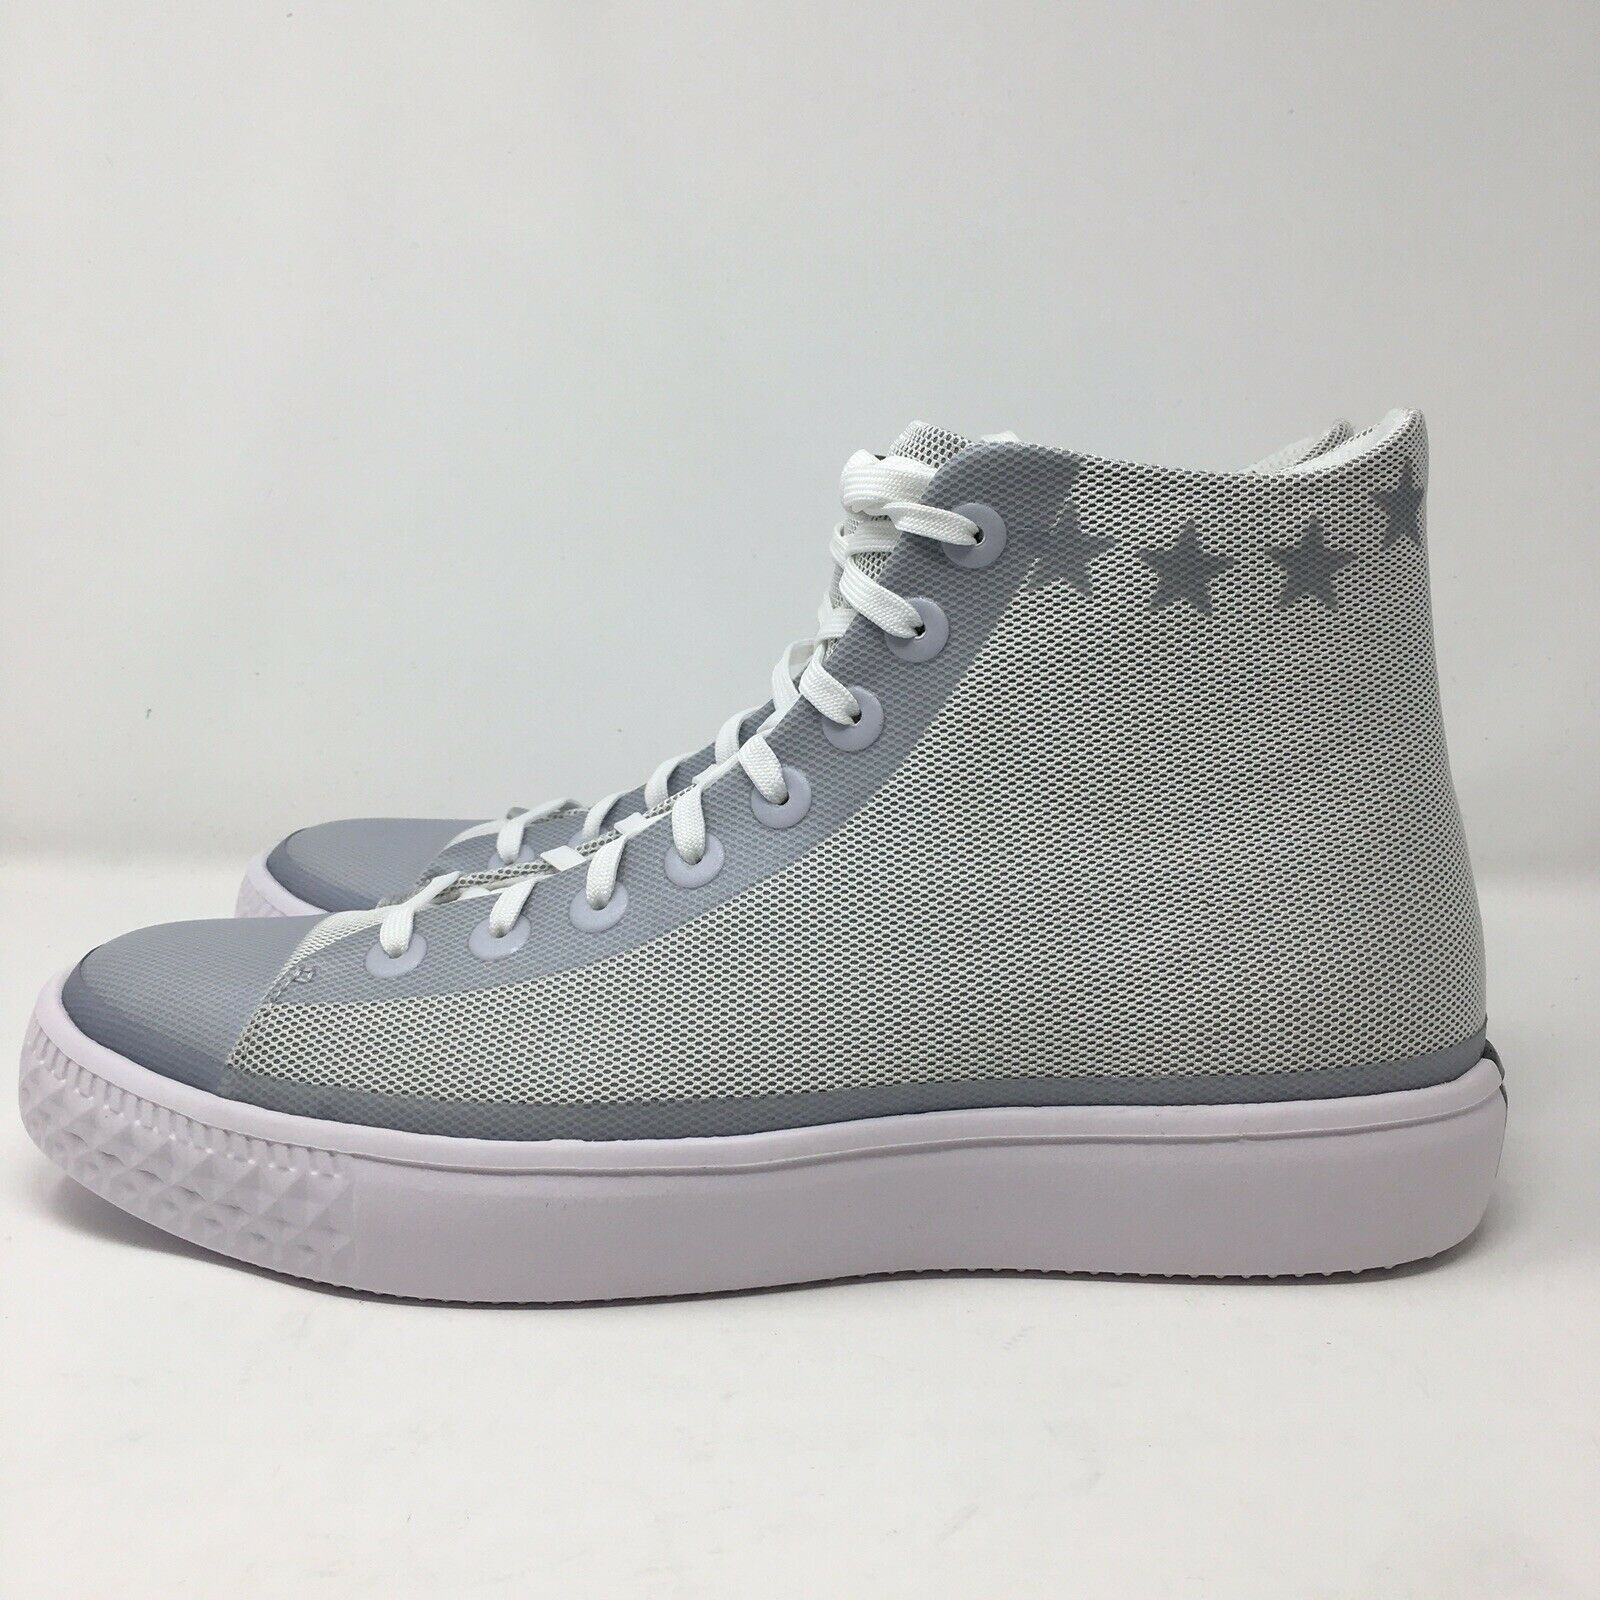 Converse CTAS Modern Hi Chuck Taylor All Star US 10.5 Men's East Vs West bianca